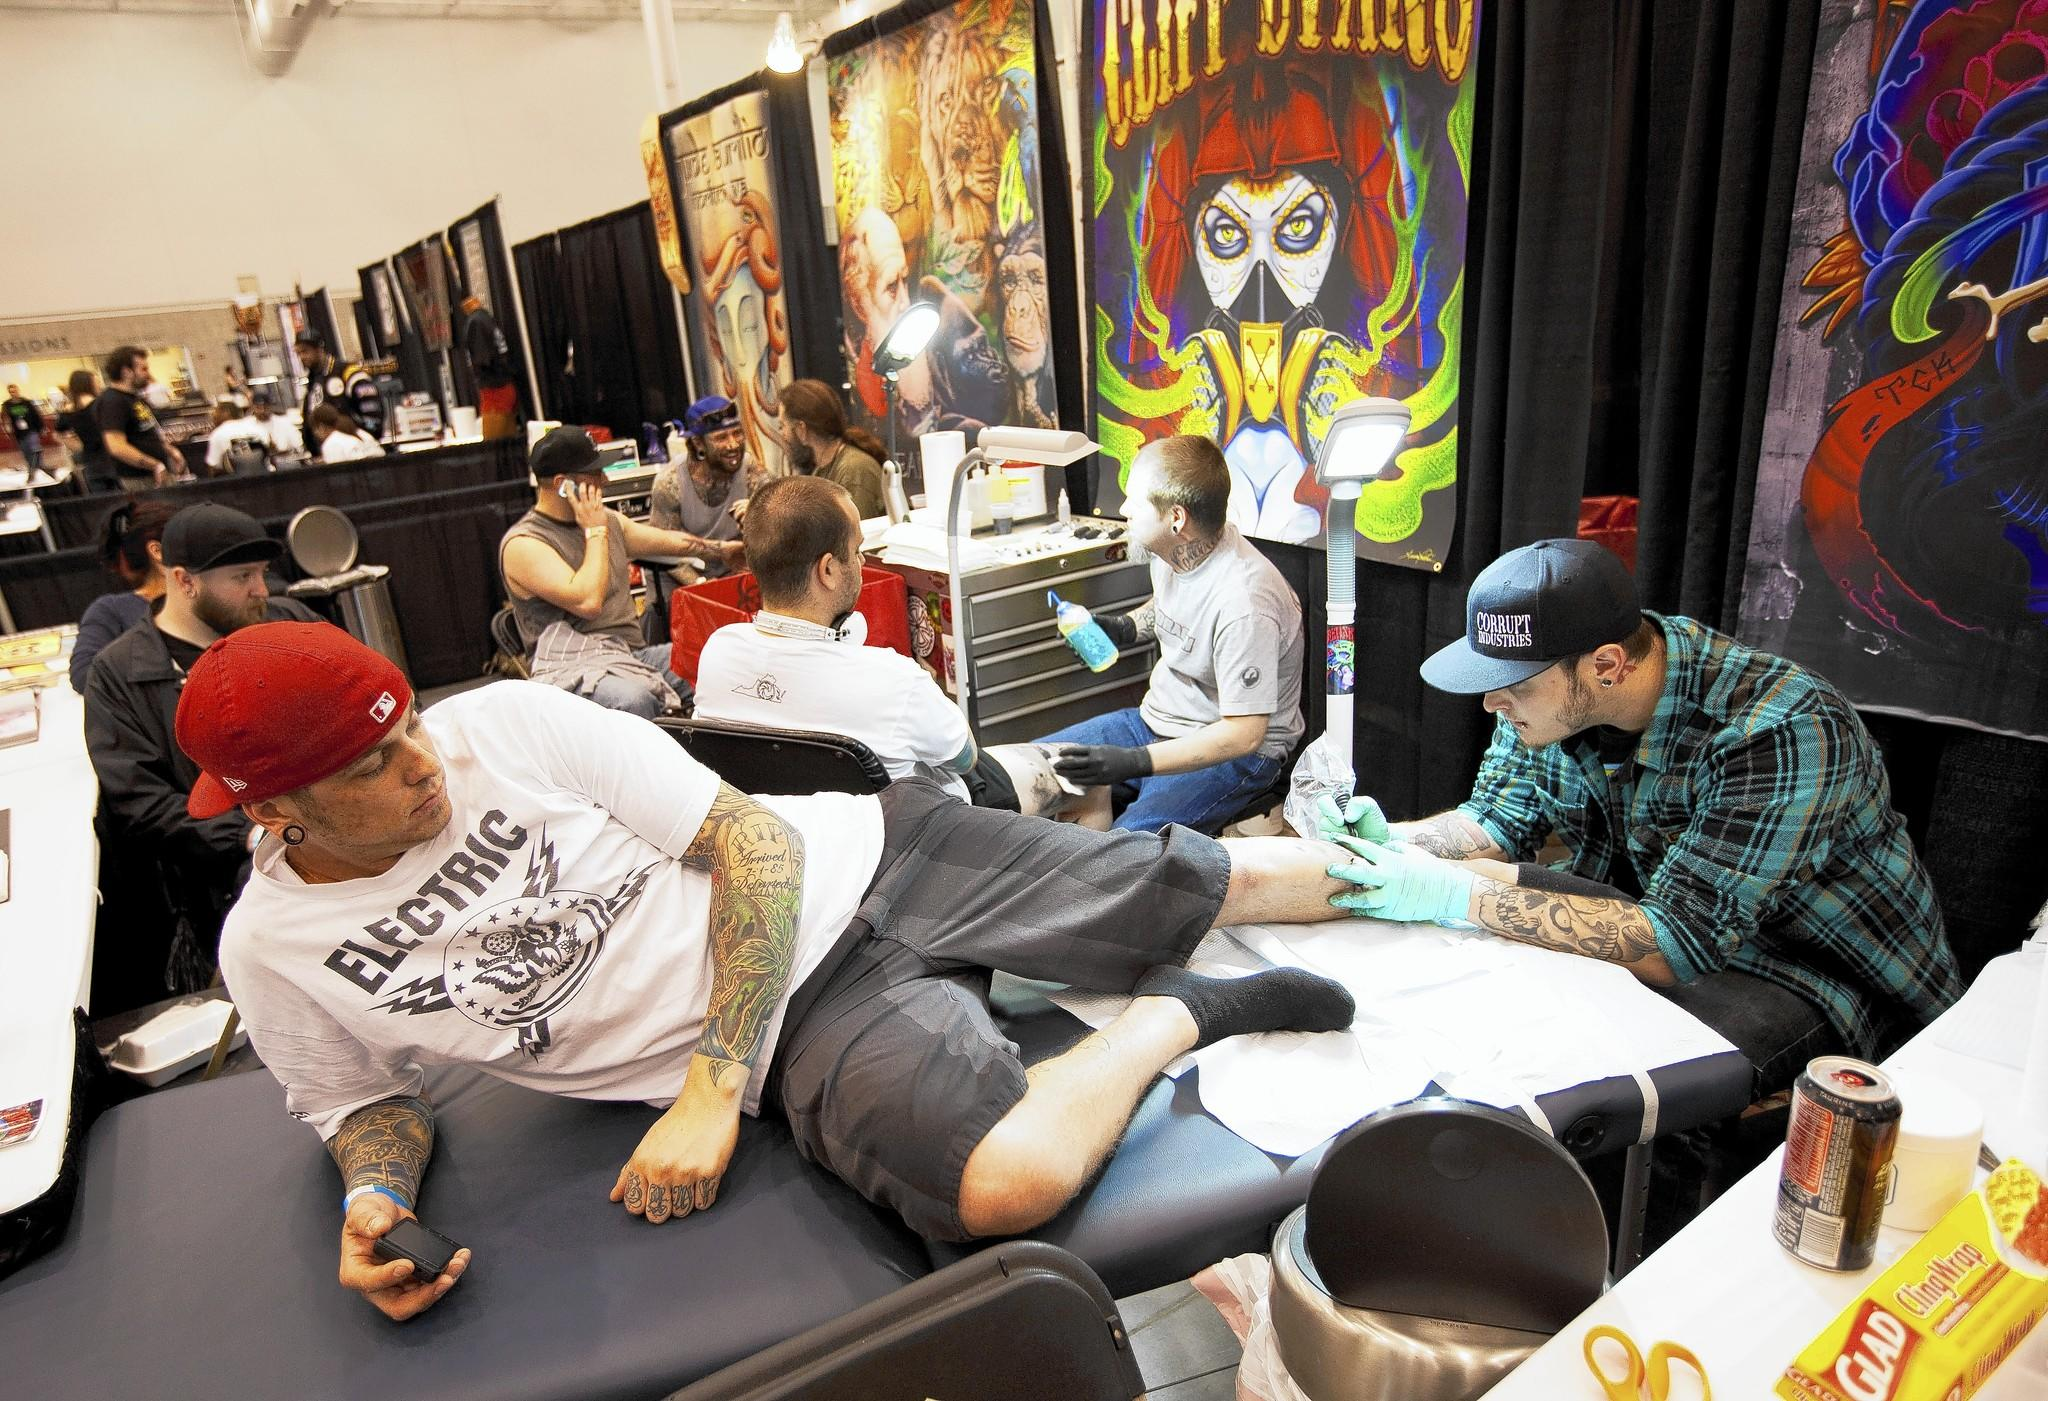 Brad Orr of Virginia Beach gets a tattoo on his leg by Drew Elish, a tattoo artist of Virginia Beach, at the 1st Hampton Roads Tattoo Arts Festival in Hampton in 2011. Over 150 tattoo artists participate in this three days festival, which draws tattoo enthusiasts.